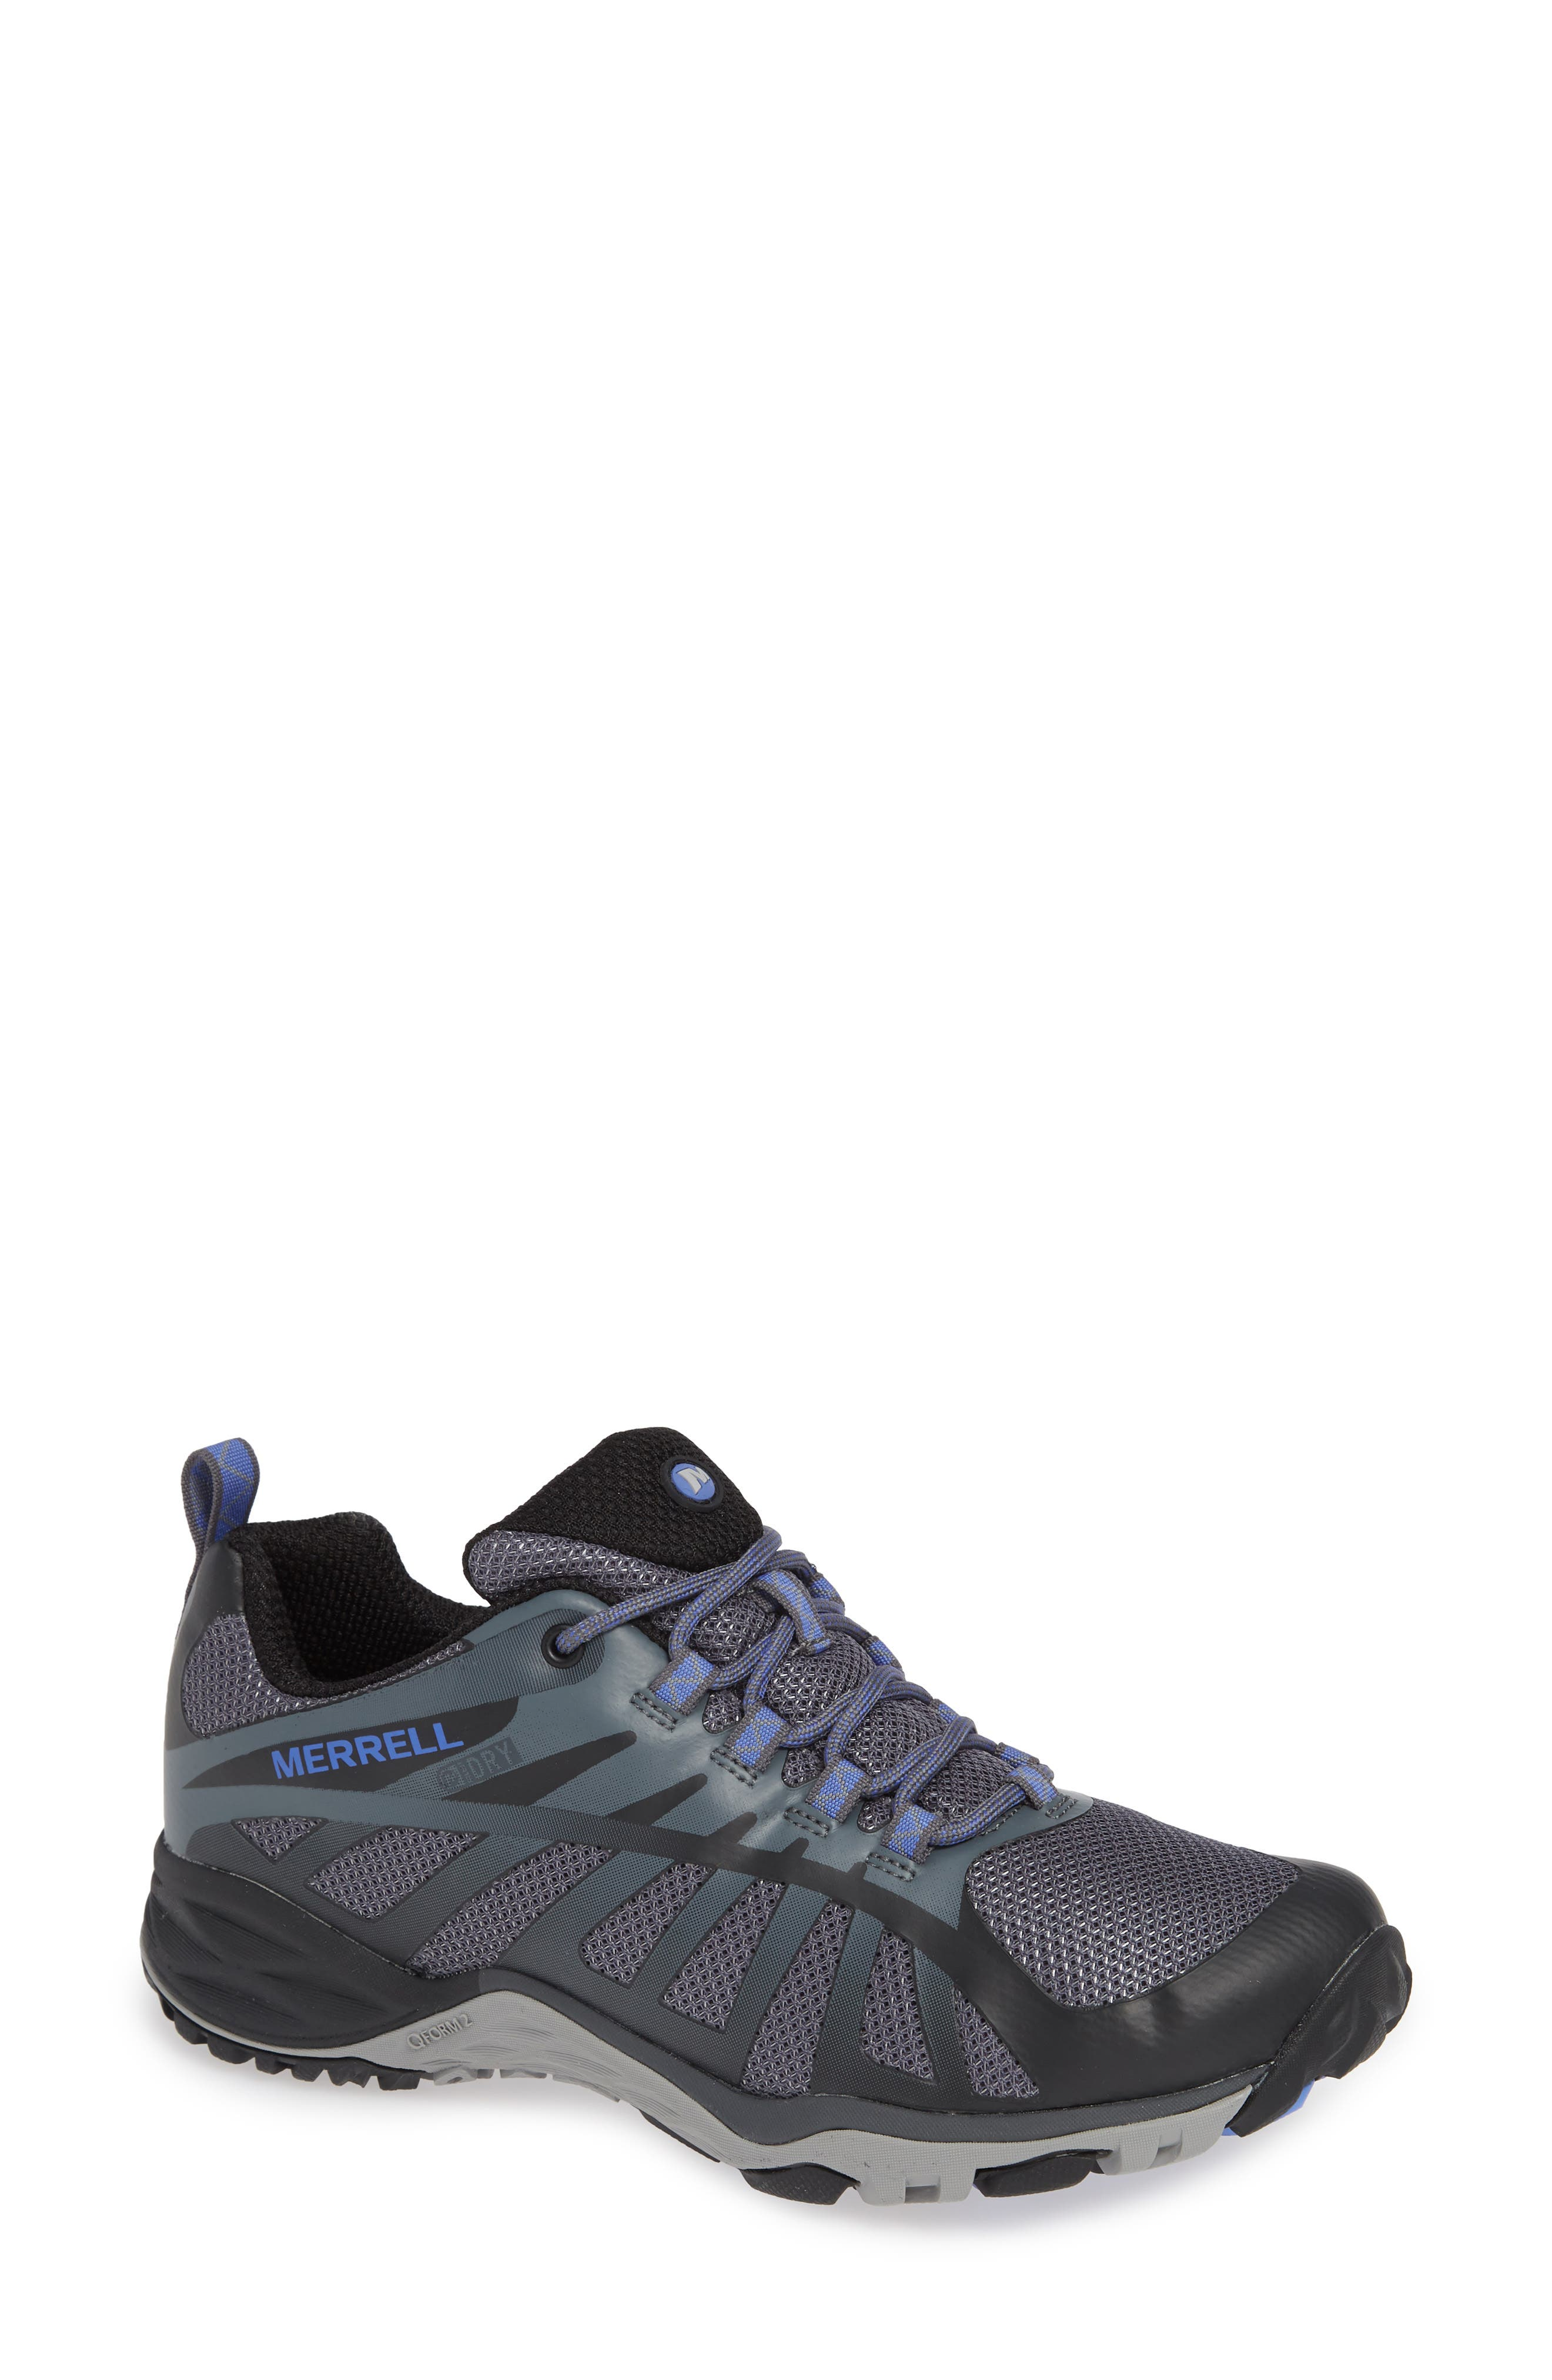 Merrell : Shoes Canada Shop Best Cheap various style Brand